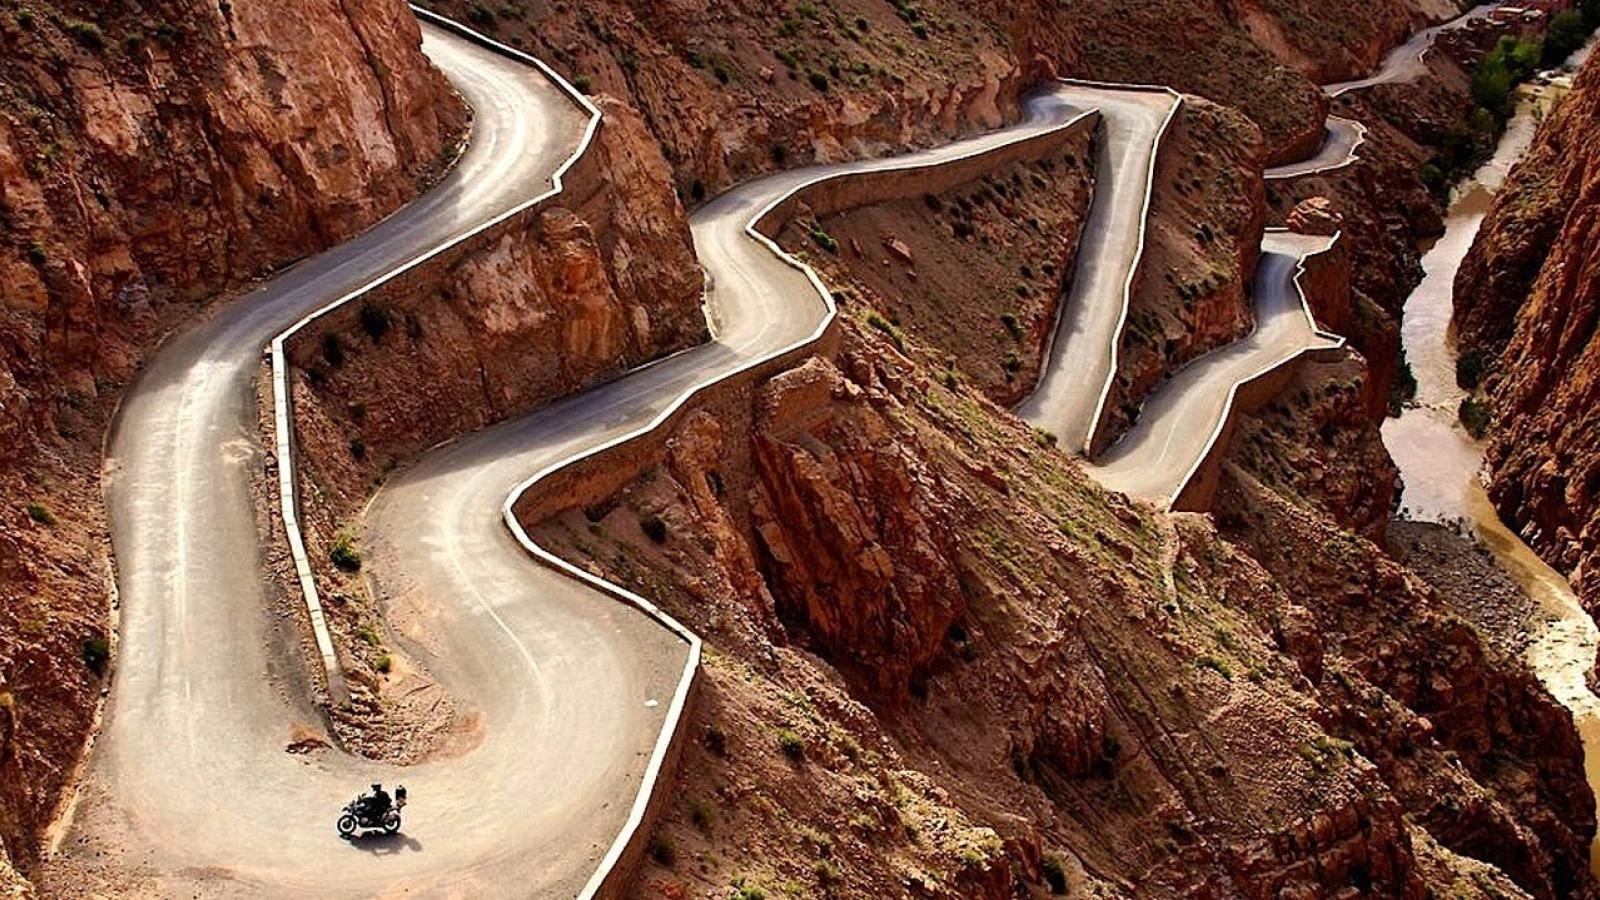 7) Dadès Gorge Road in the High Atlas Mountains, Morocco 2